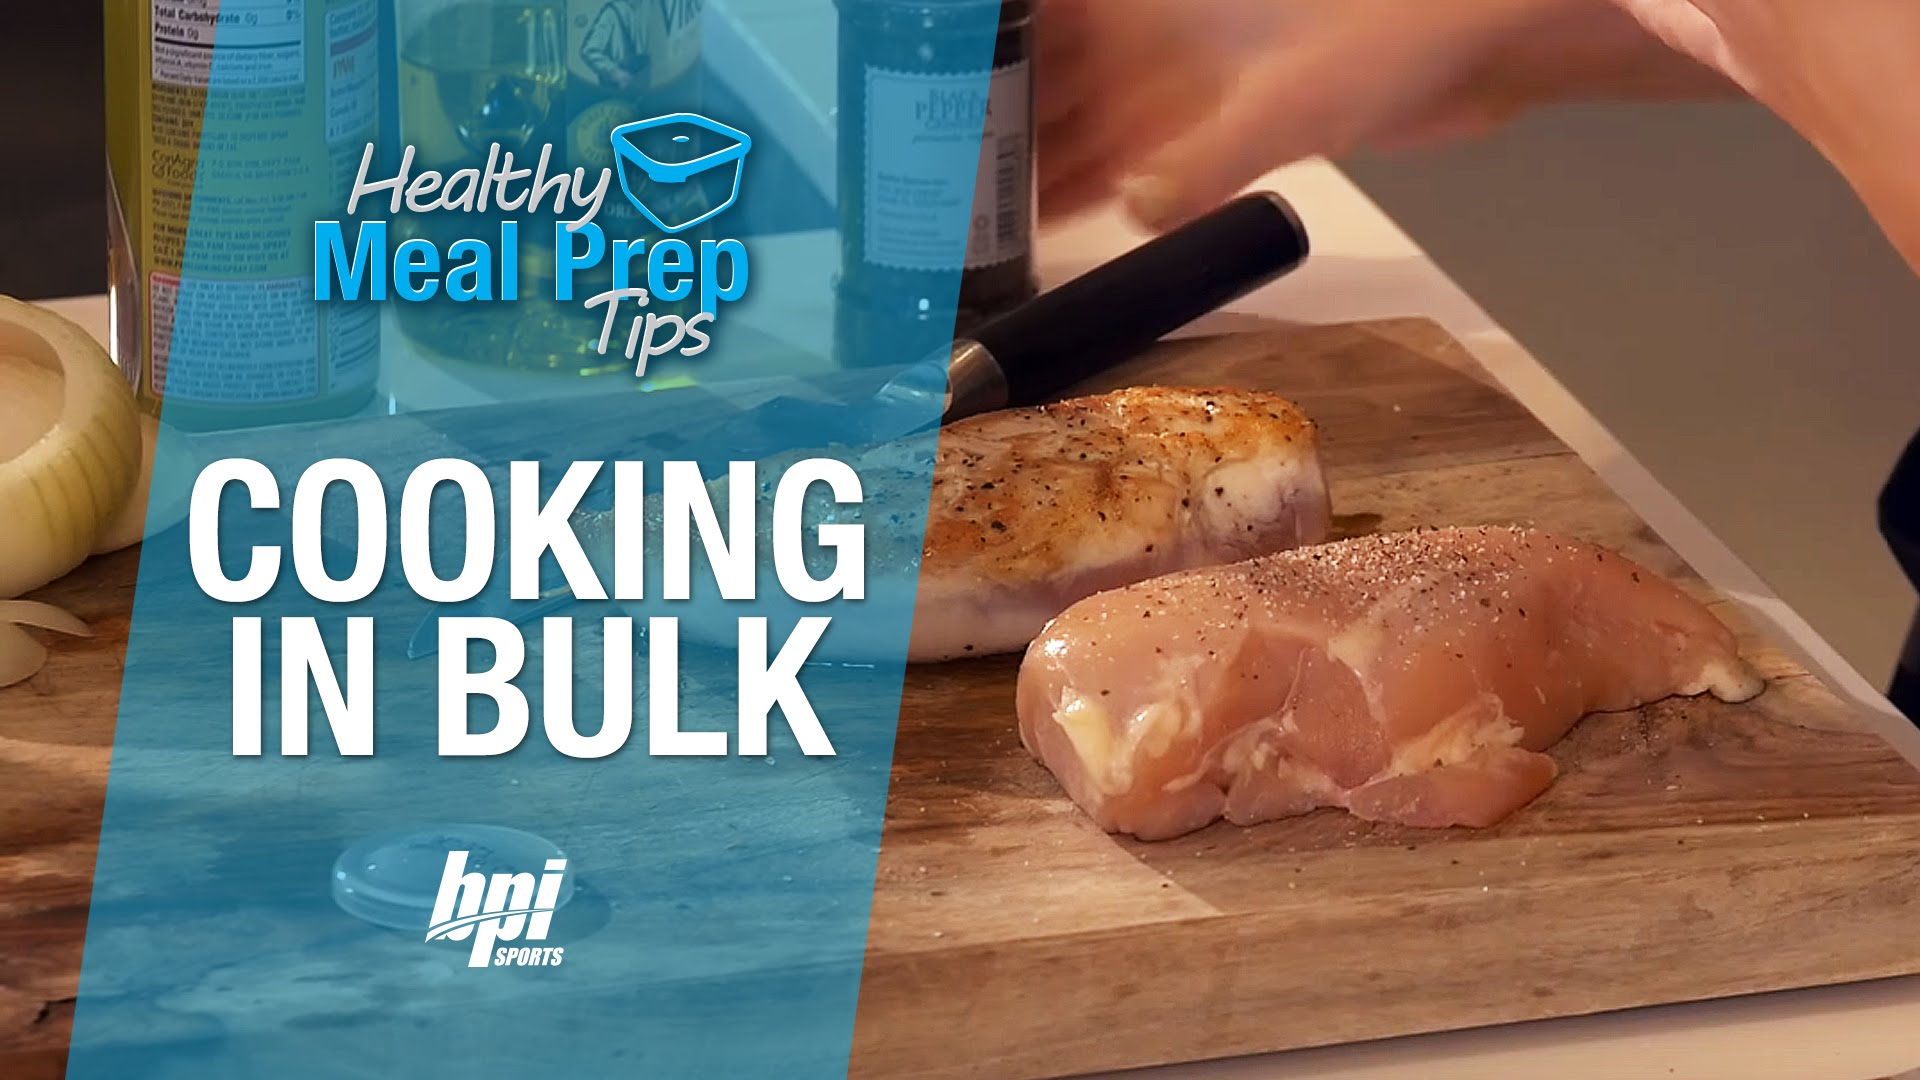 Healthy-Meal-Prep-Tips-Cooking-in-Bulk-BPI-Sports